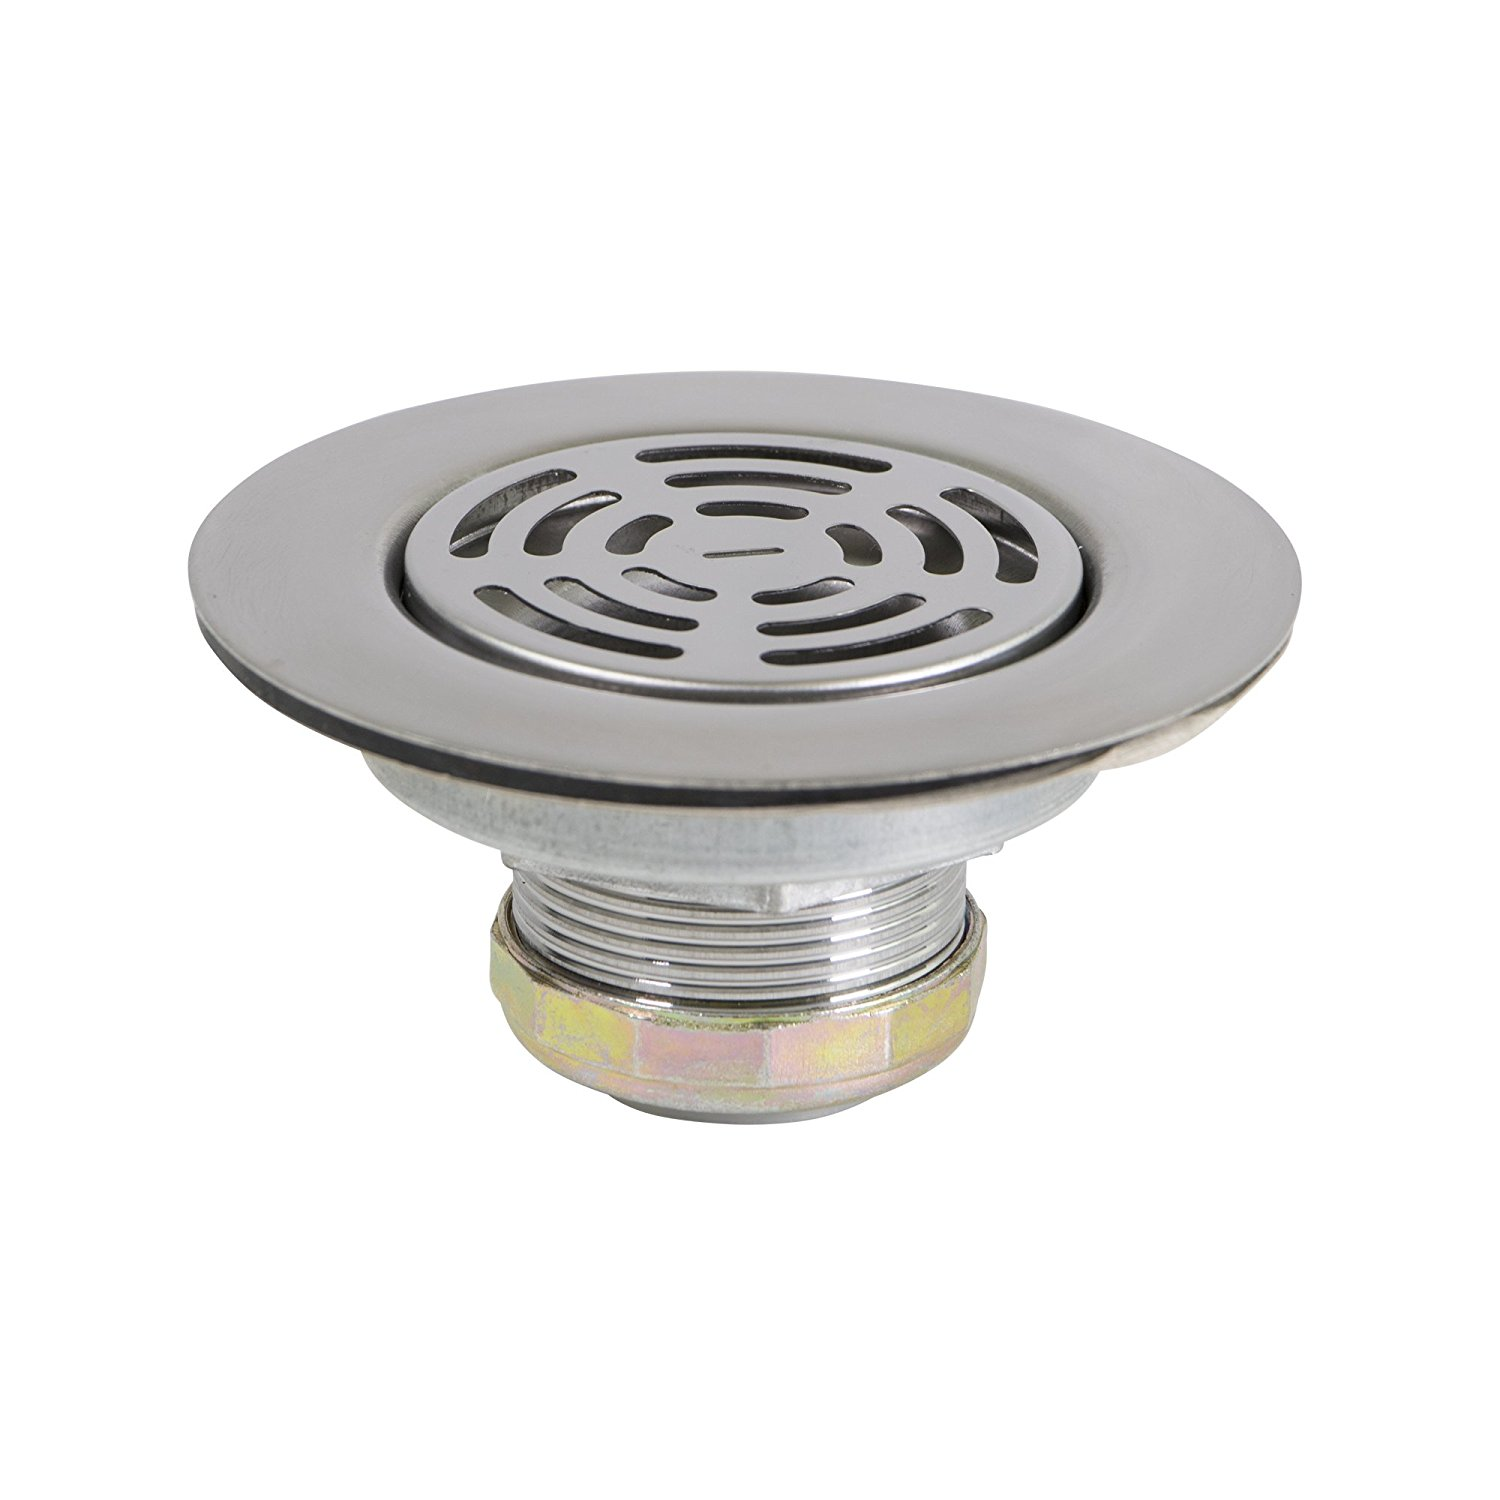 Everflow Flat Stainless Steel RV Mobile Shower Strainer Drain Assembly for Kitchen or Laundry Sinks� by Everflow